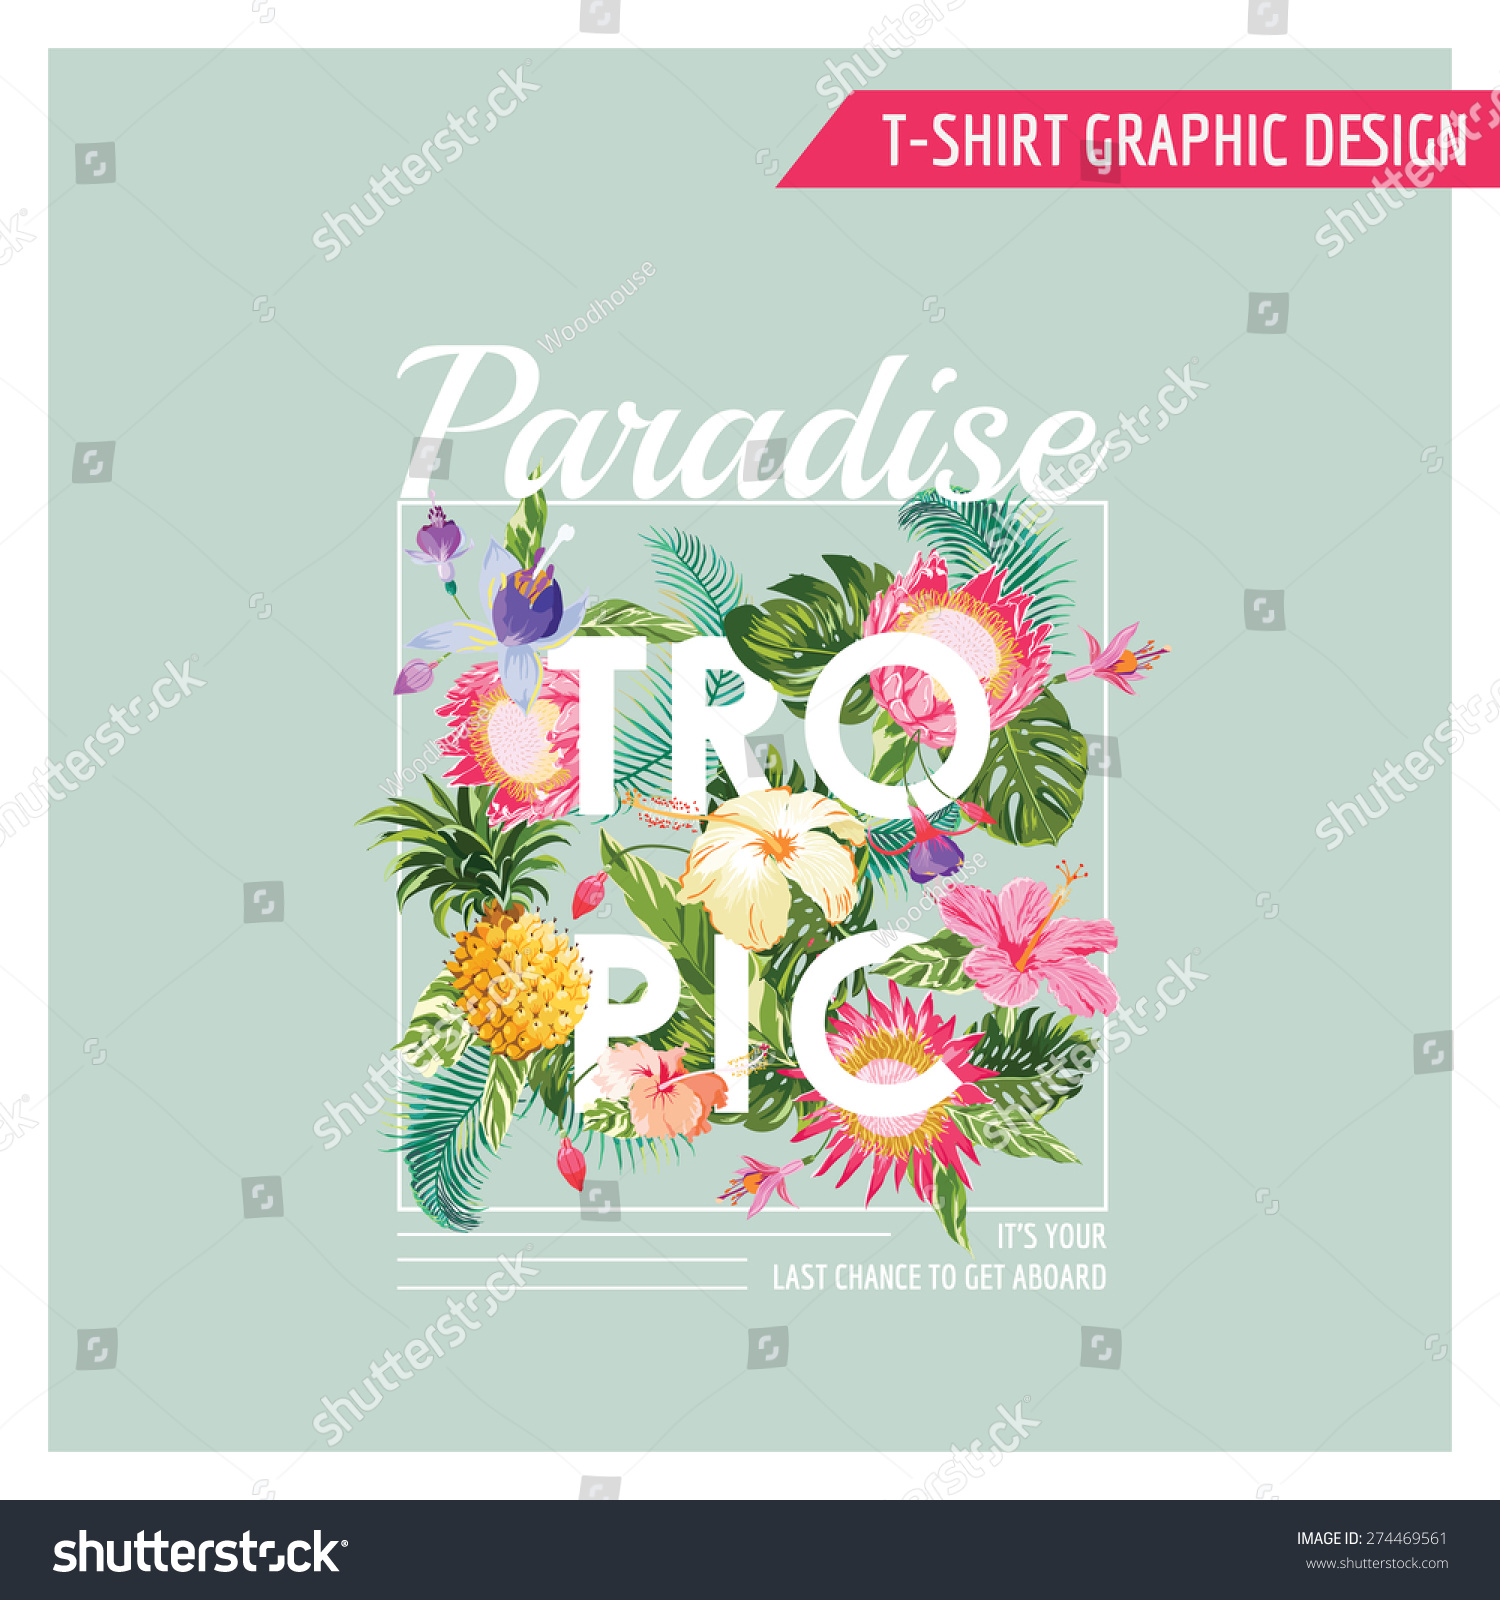 Tropical Flowers Graphic Design Tshirt Fashion Stock